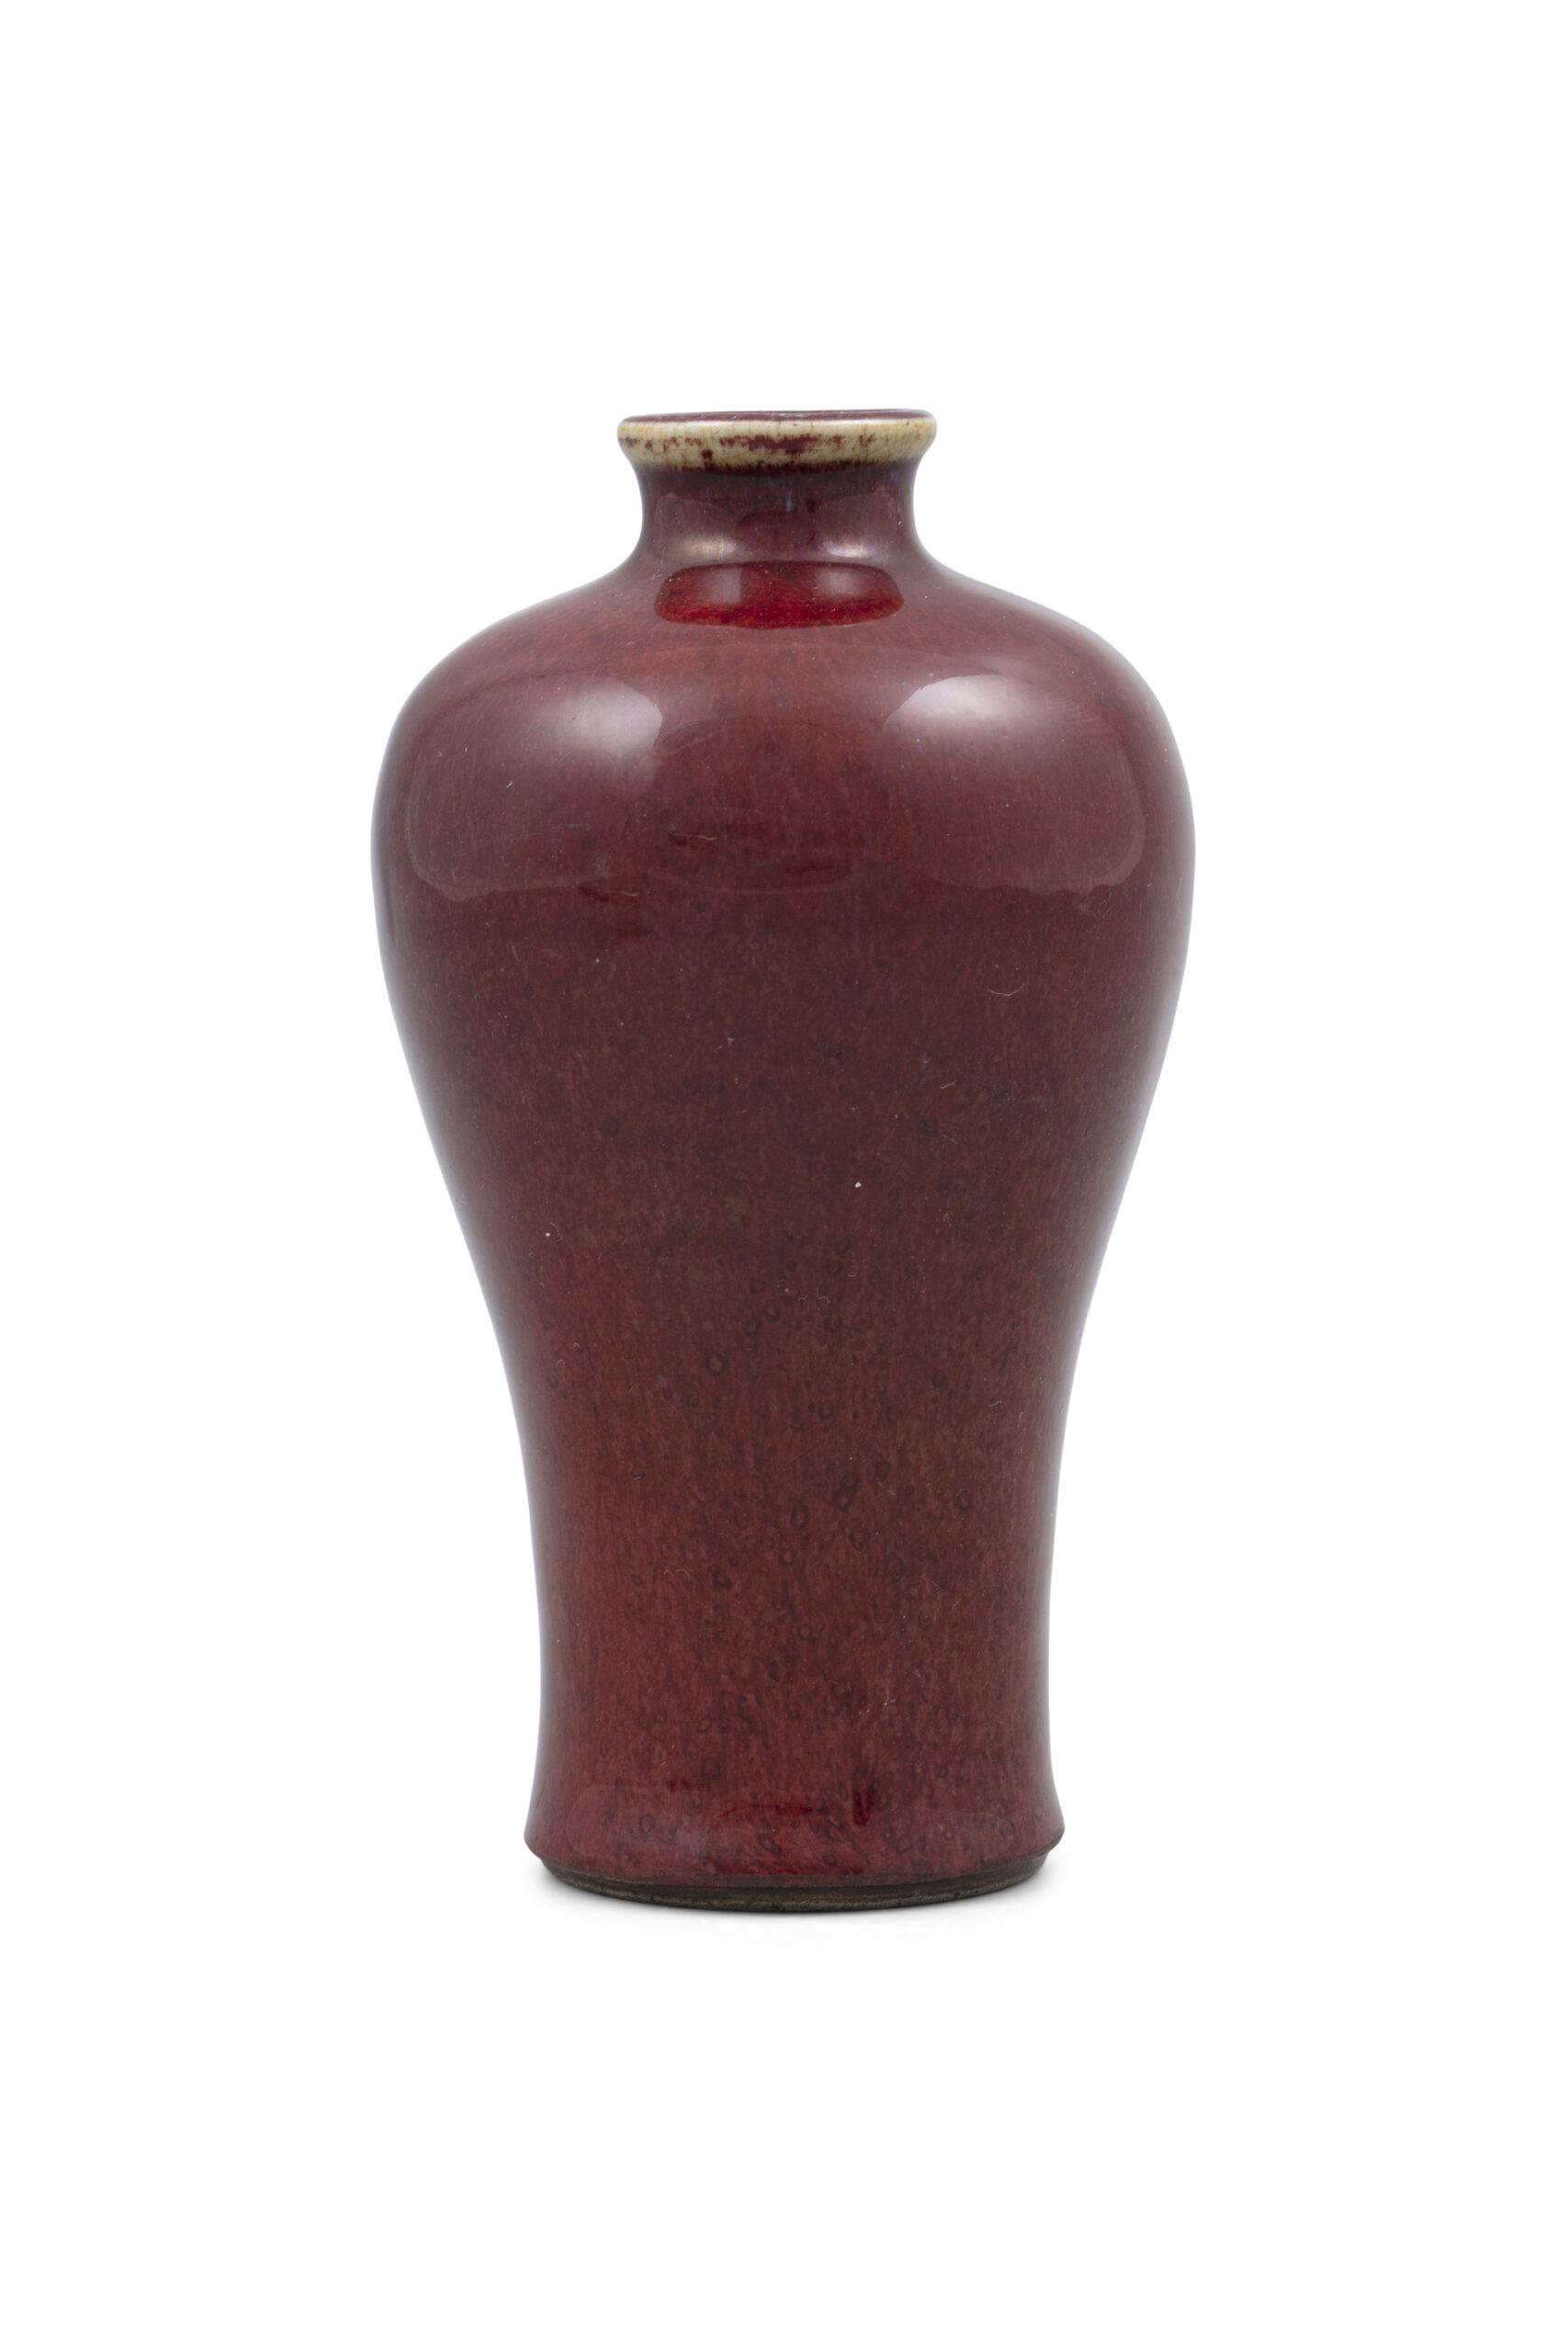 A FLAMBE MEIPING VASE, CHINA, QING DYNASTY, KANGXI PERIOD